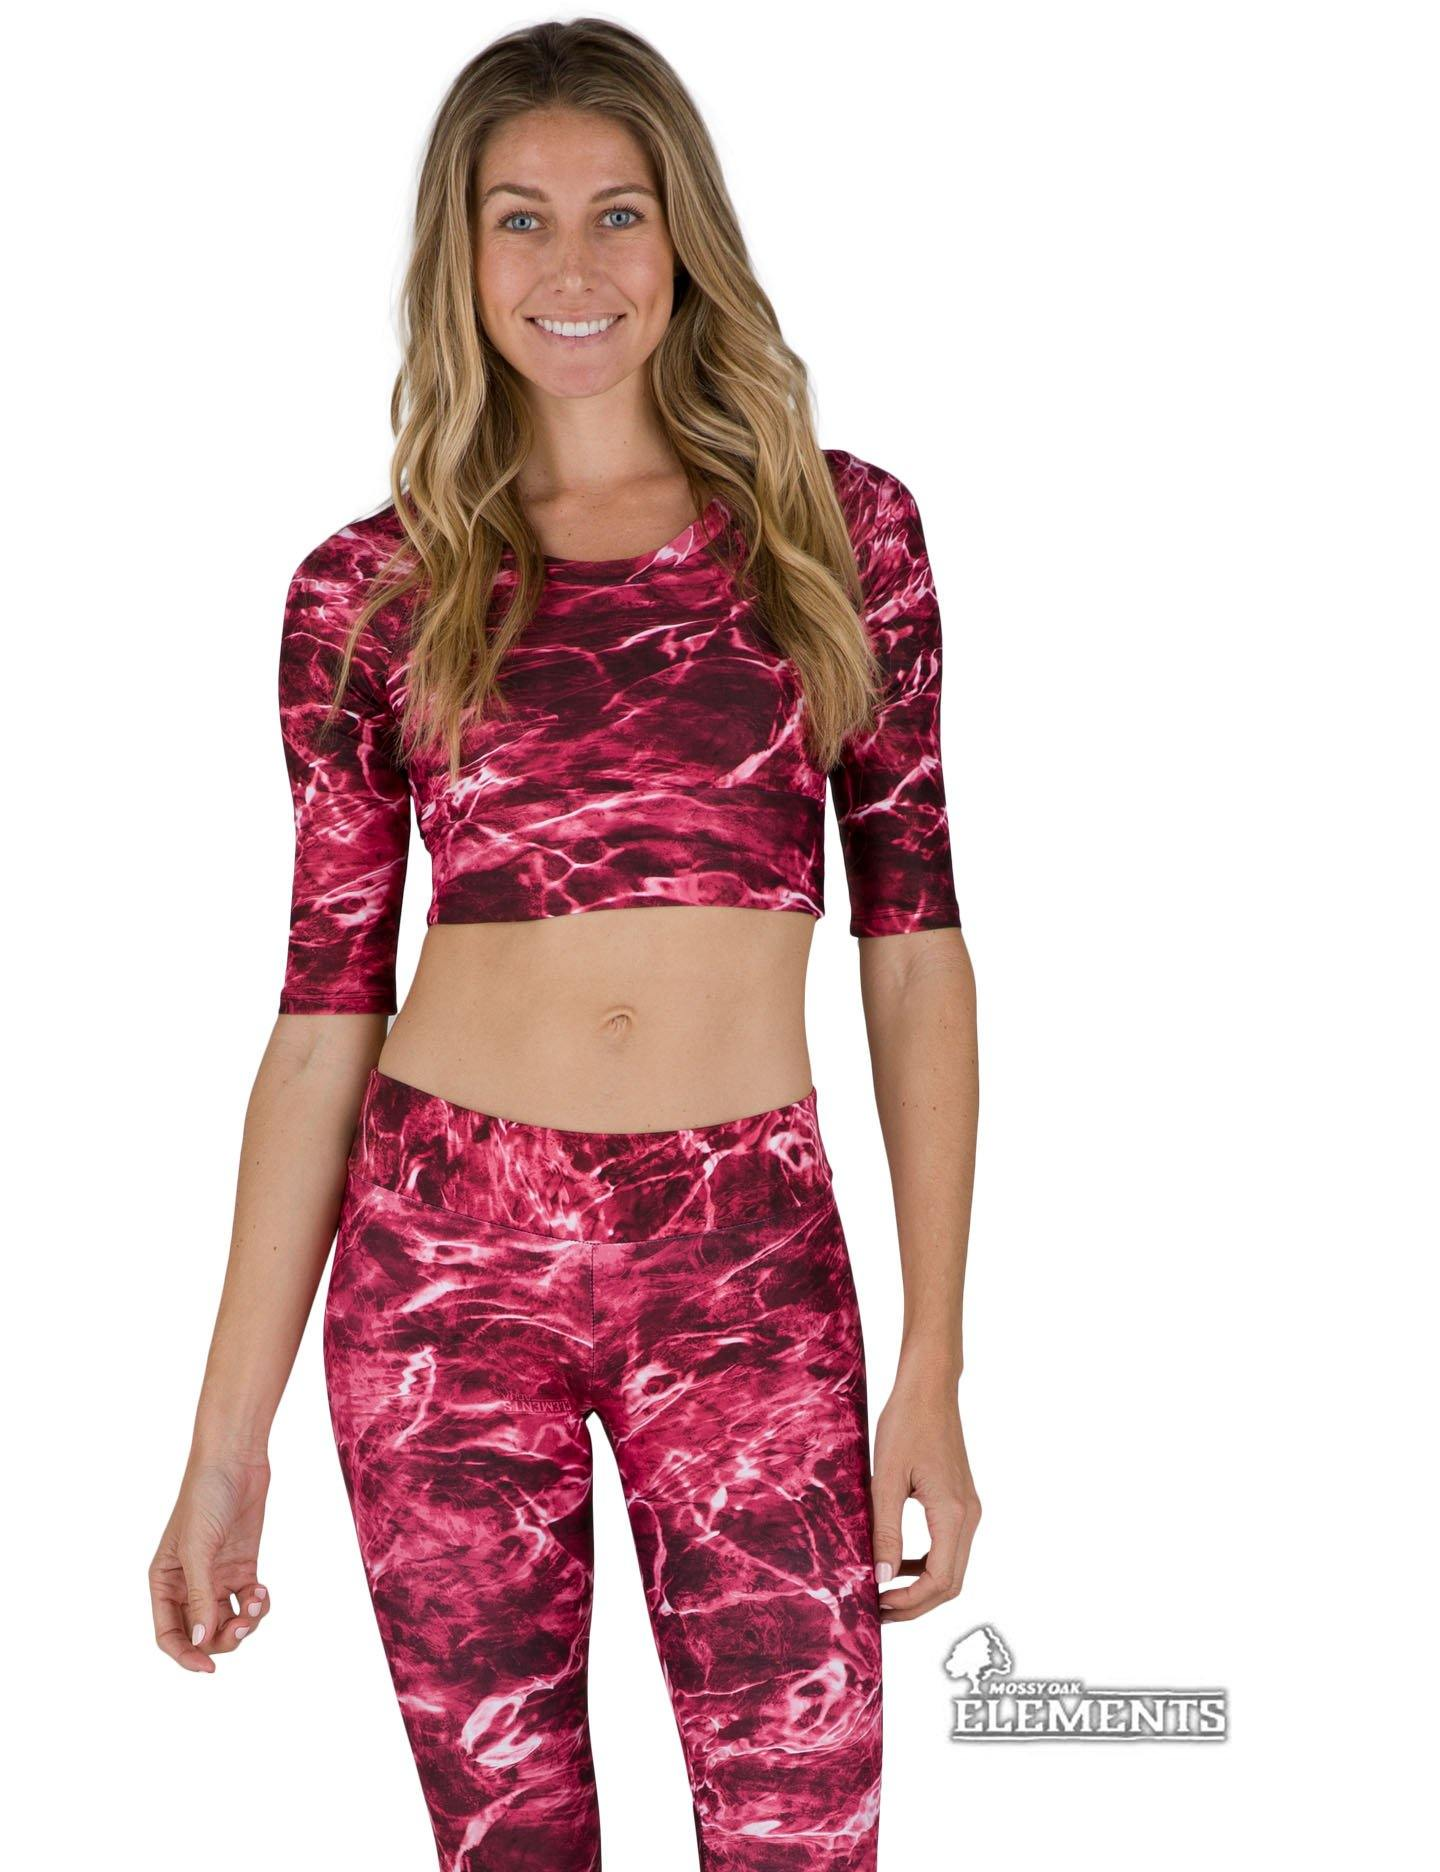 Apsara Cropped Top, Mossy Oak Elements Crimson